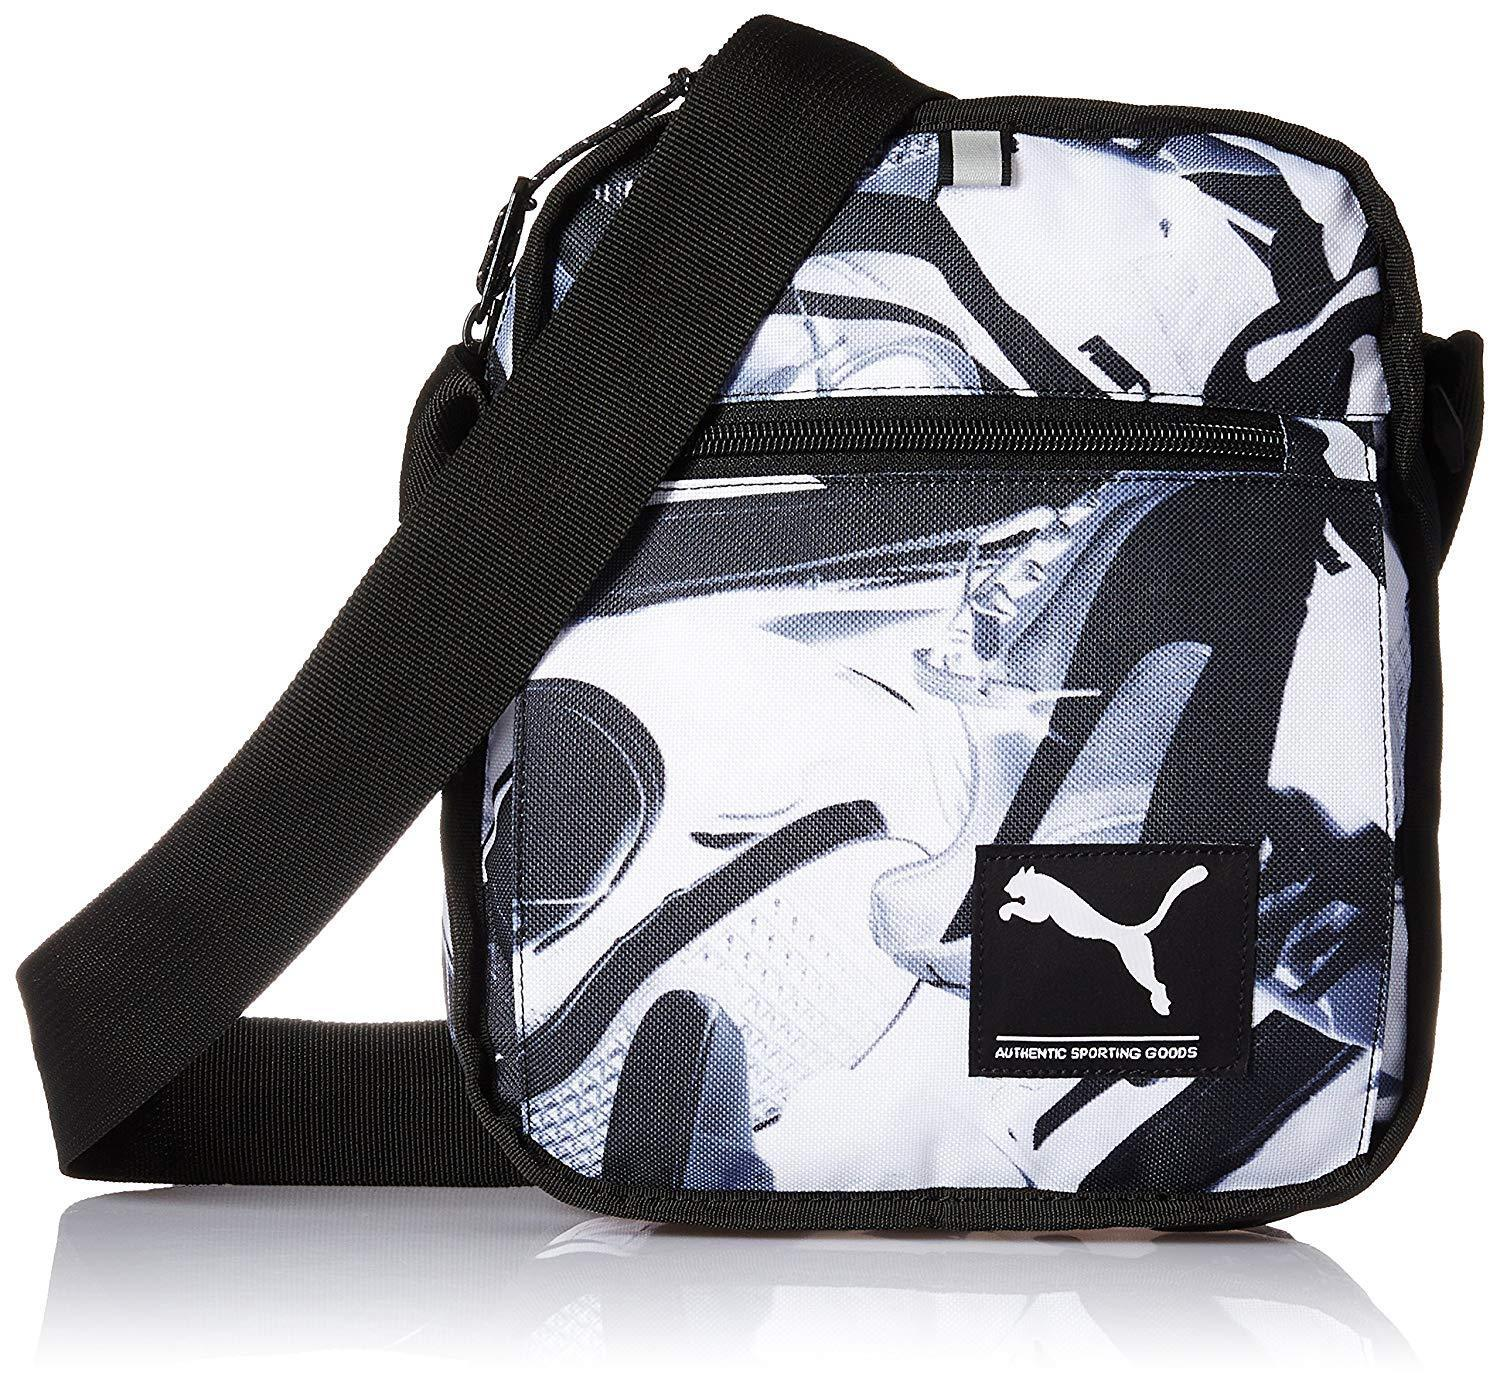 Puma Adults Unisex Academy Portable Bag Sneaker Print 072991 45